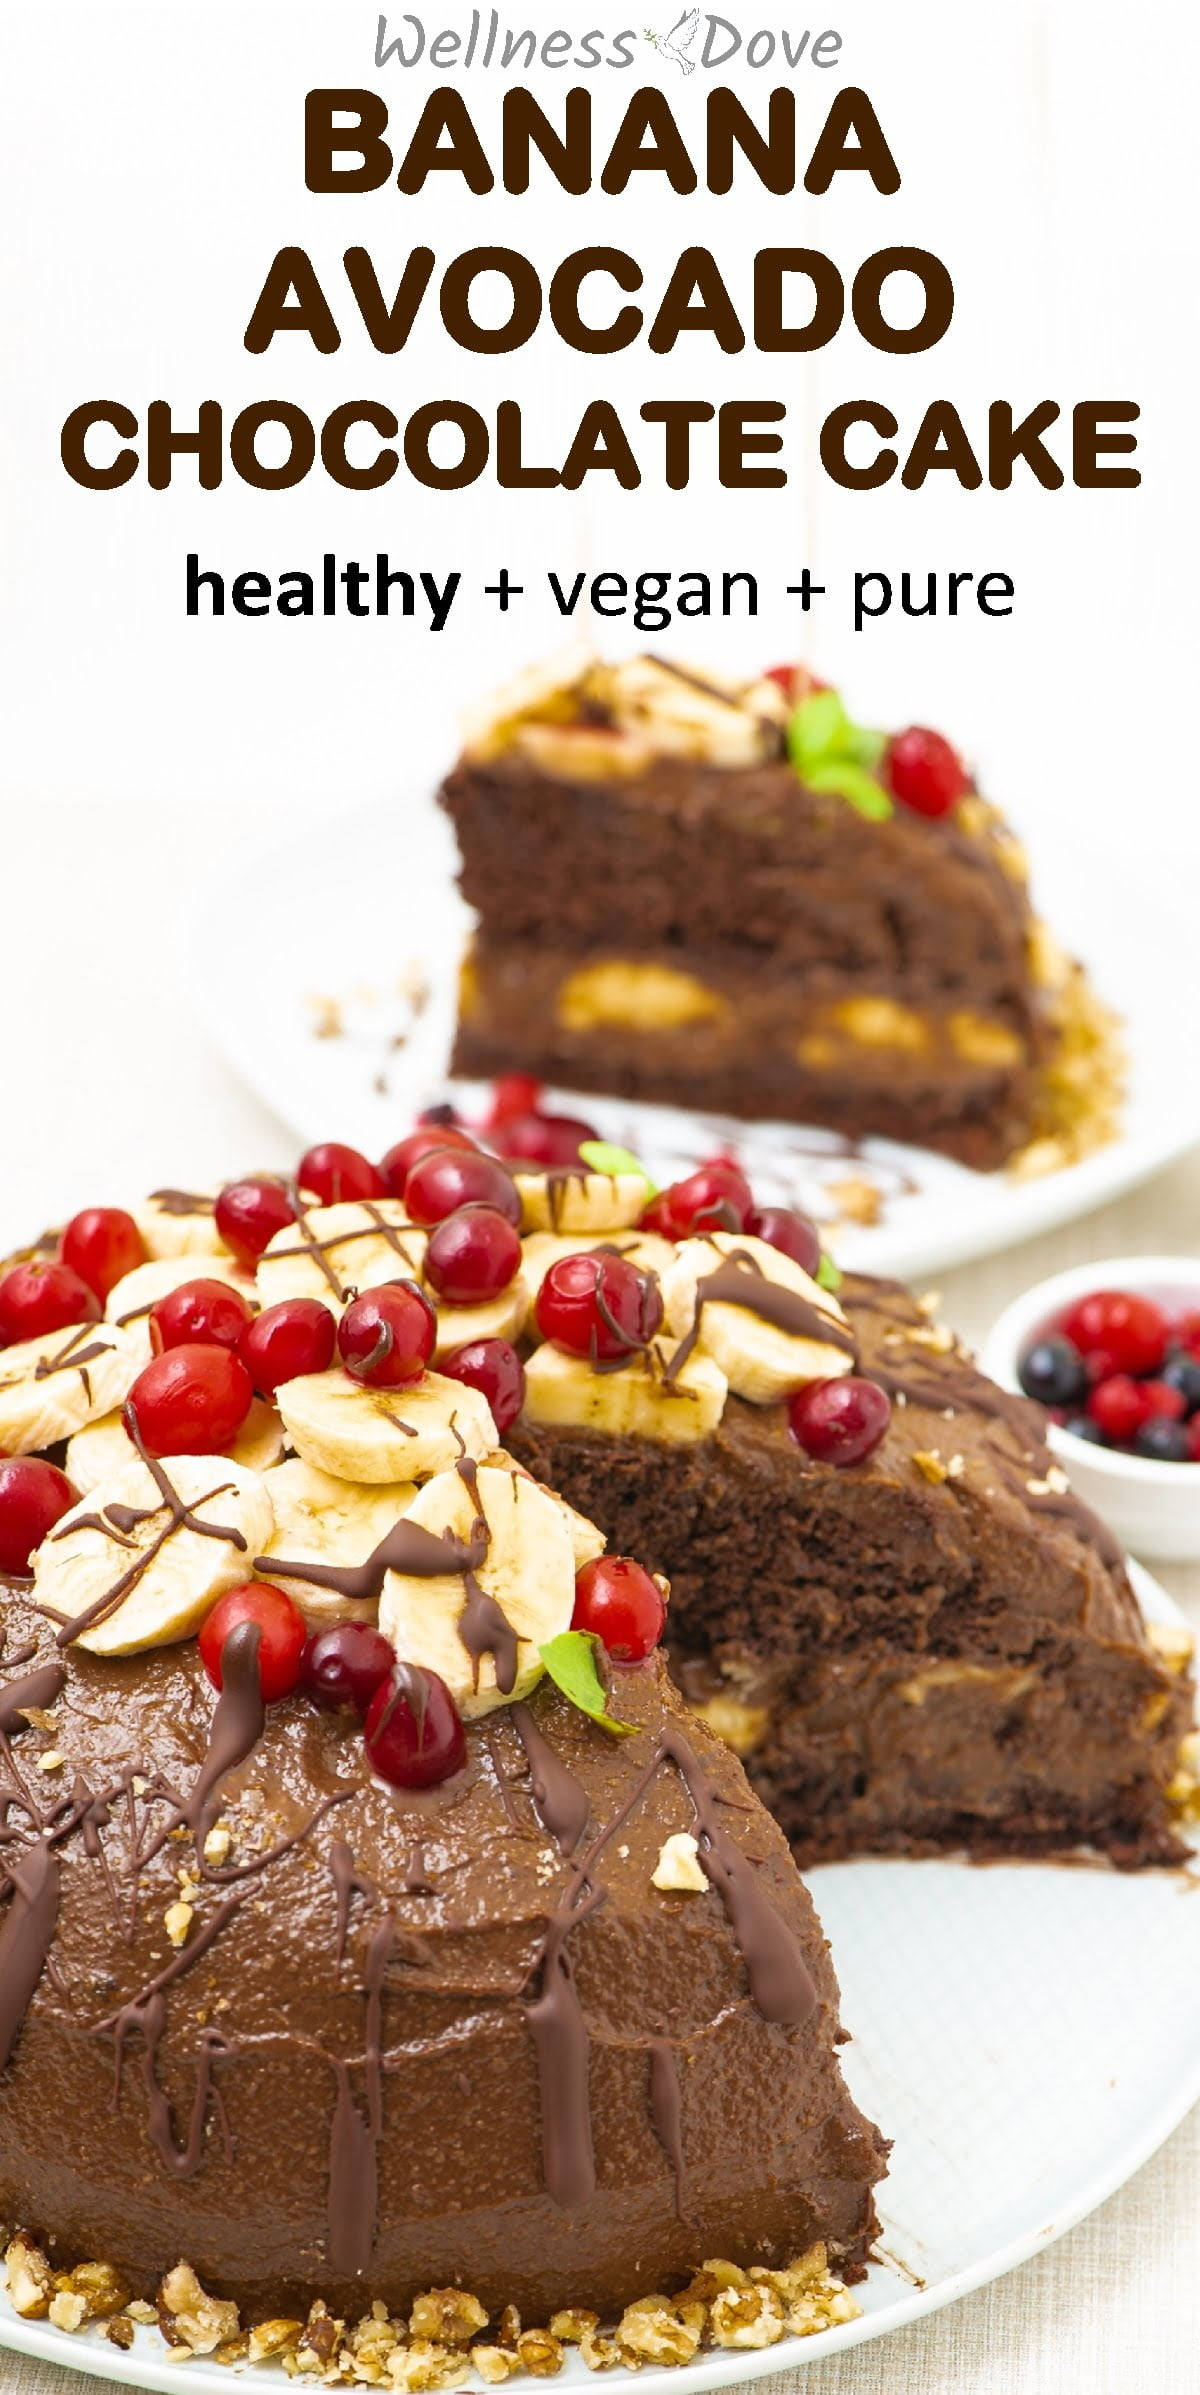 A plant-based recipe that is super healthy and delicious!Chocolate vegan cake, filled with fresh bananas, covered with a fantastic raw banana avocado frosting for a more chocolatey flavor.Completely vegan and mostly whole food, this is one healthy dessert that you can enjoy guilt-free. Super high in micronutrients and no empty calories!